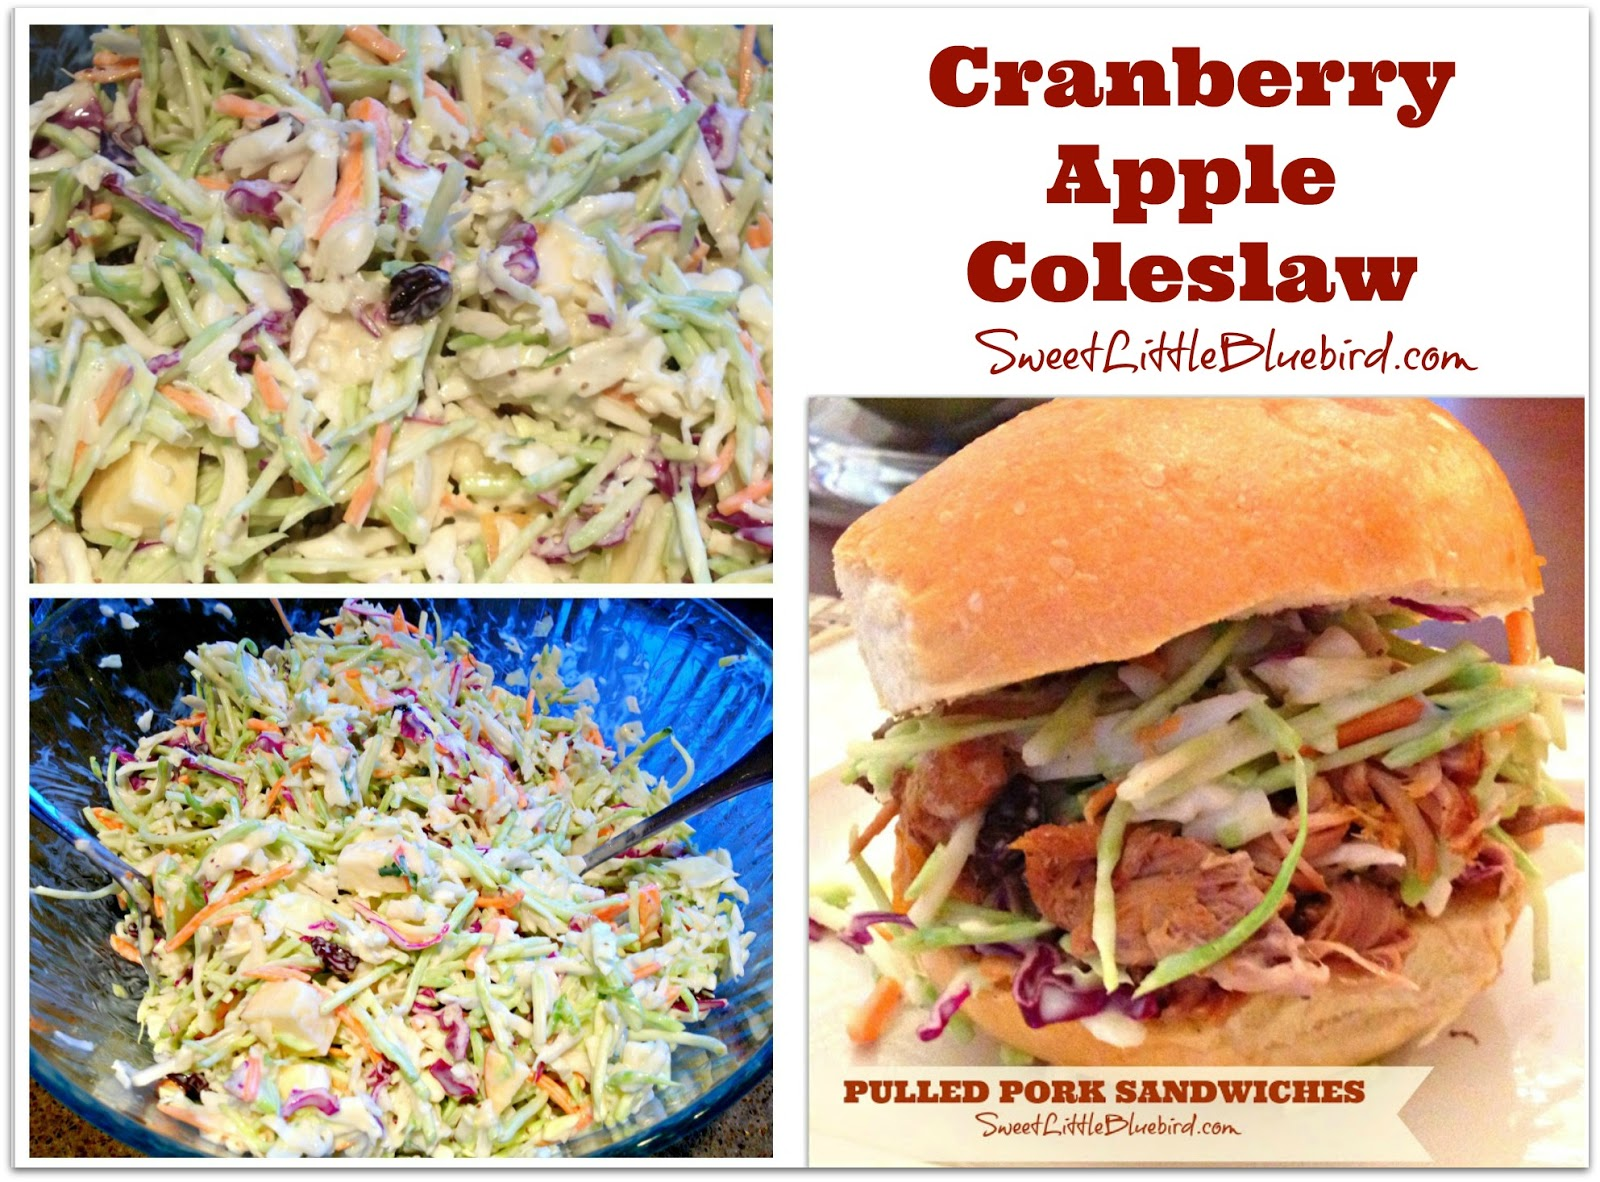 Cranberry apple coleslaw | 25+ apple recipes